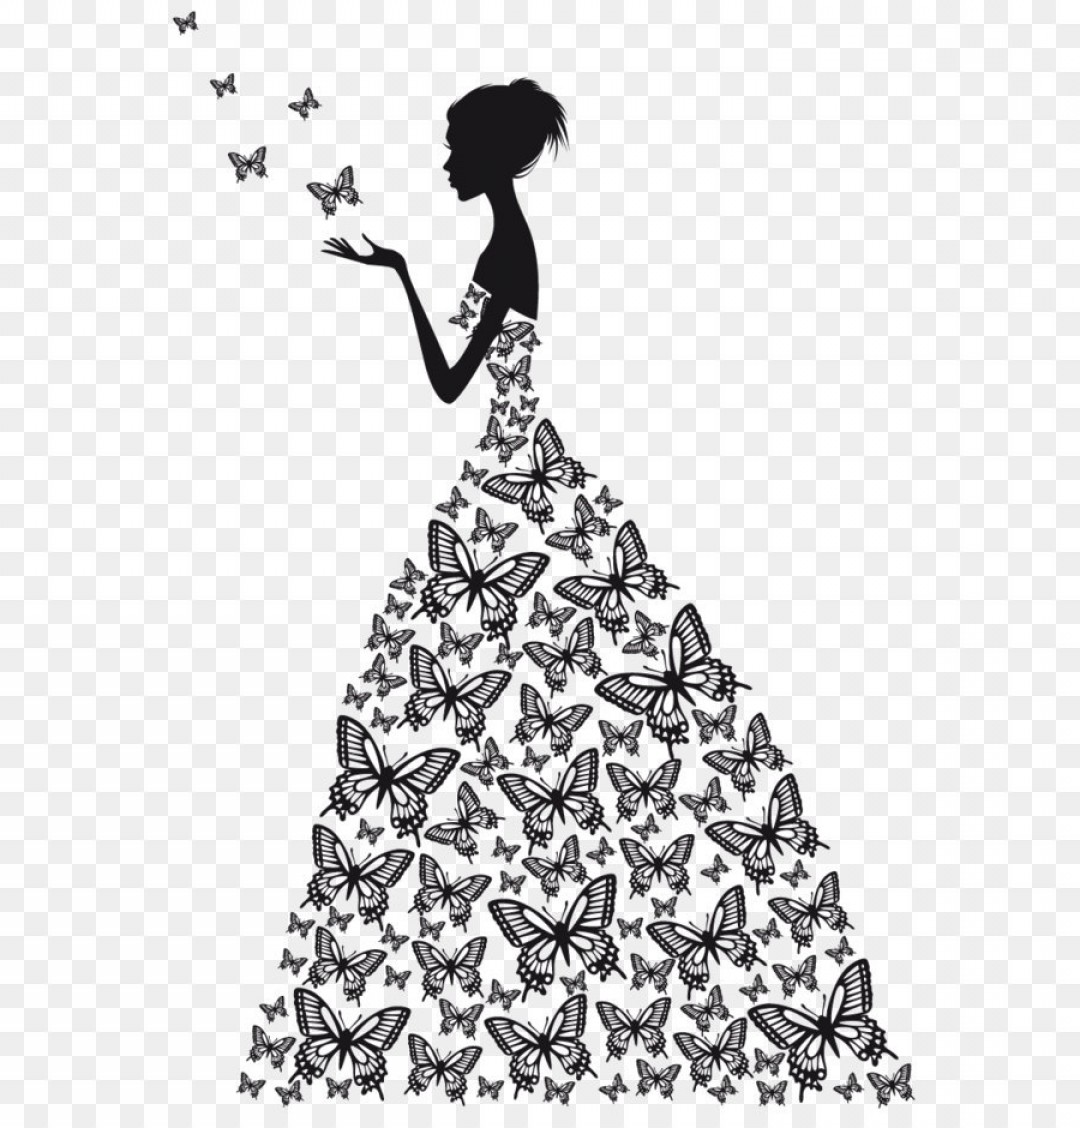 Vector Images Of Black And White Dresses: Png Wedding Dress Sketch Beauty Vector Flat Butterfly